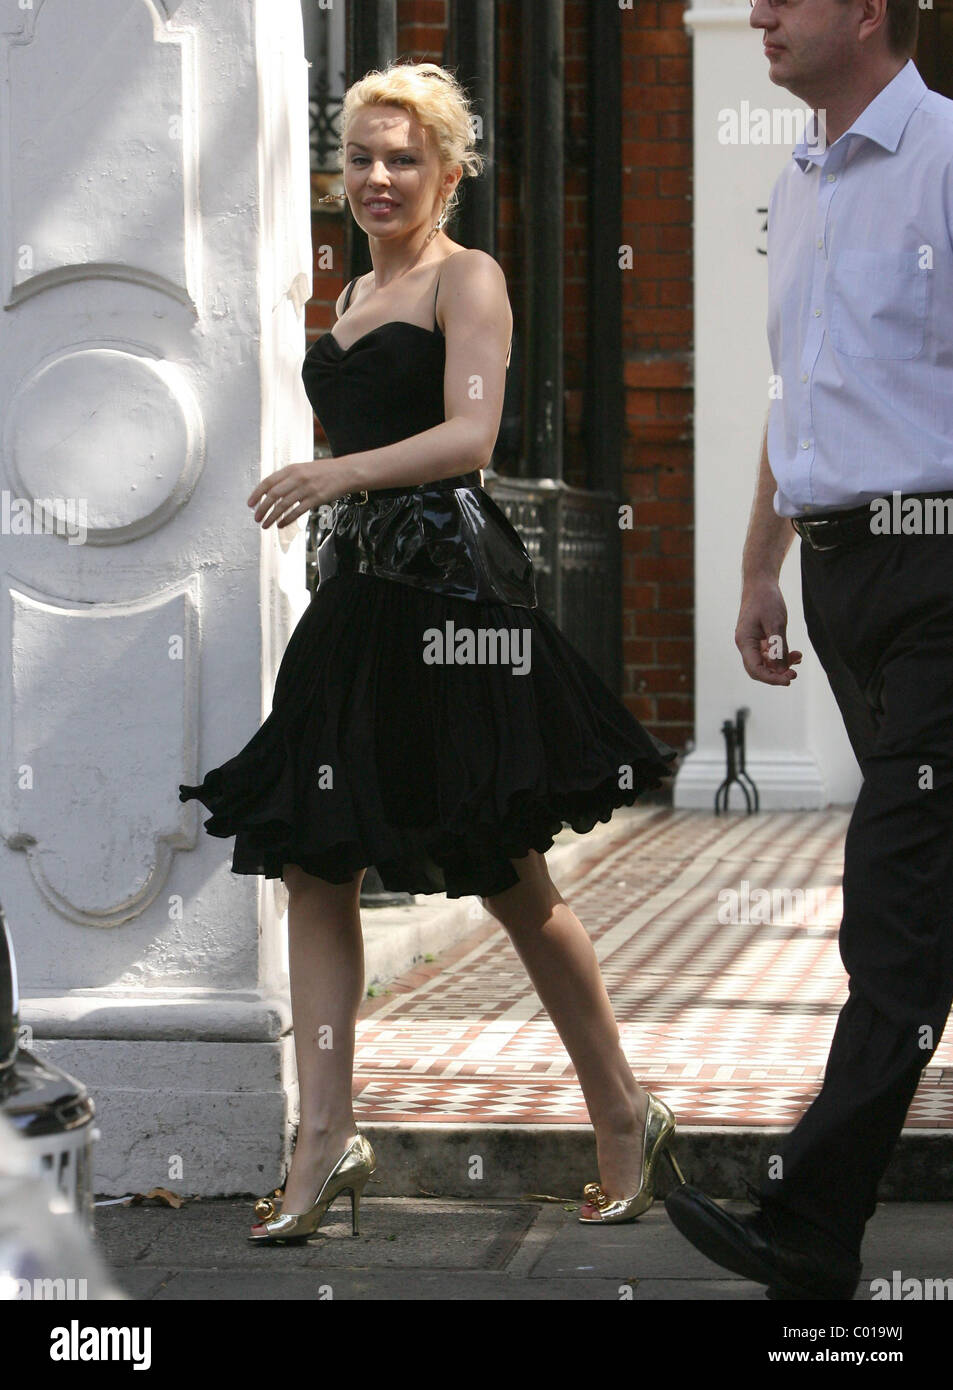 Kylie Minogue leaving her apartment this morning on her way to a recording studio. The pint sized singer has justStock Photo